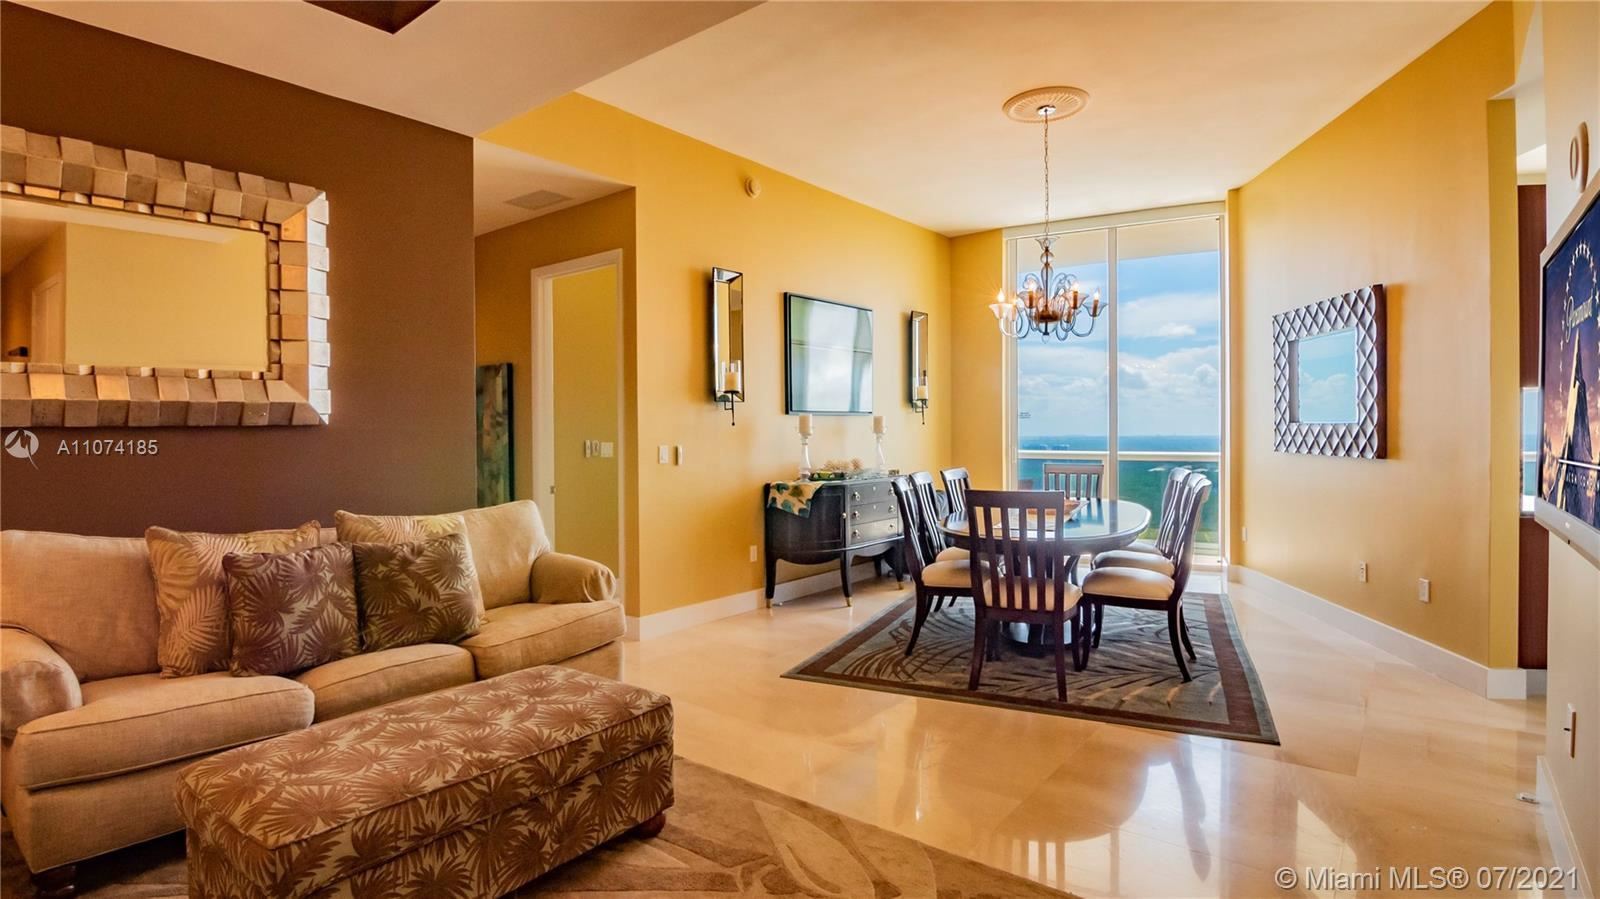 Photo of 15901 Collins Ave #4105, Sunny Isles Beach, FL 33160 (MLS # A11074185)